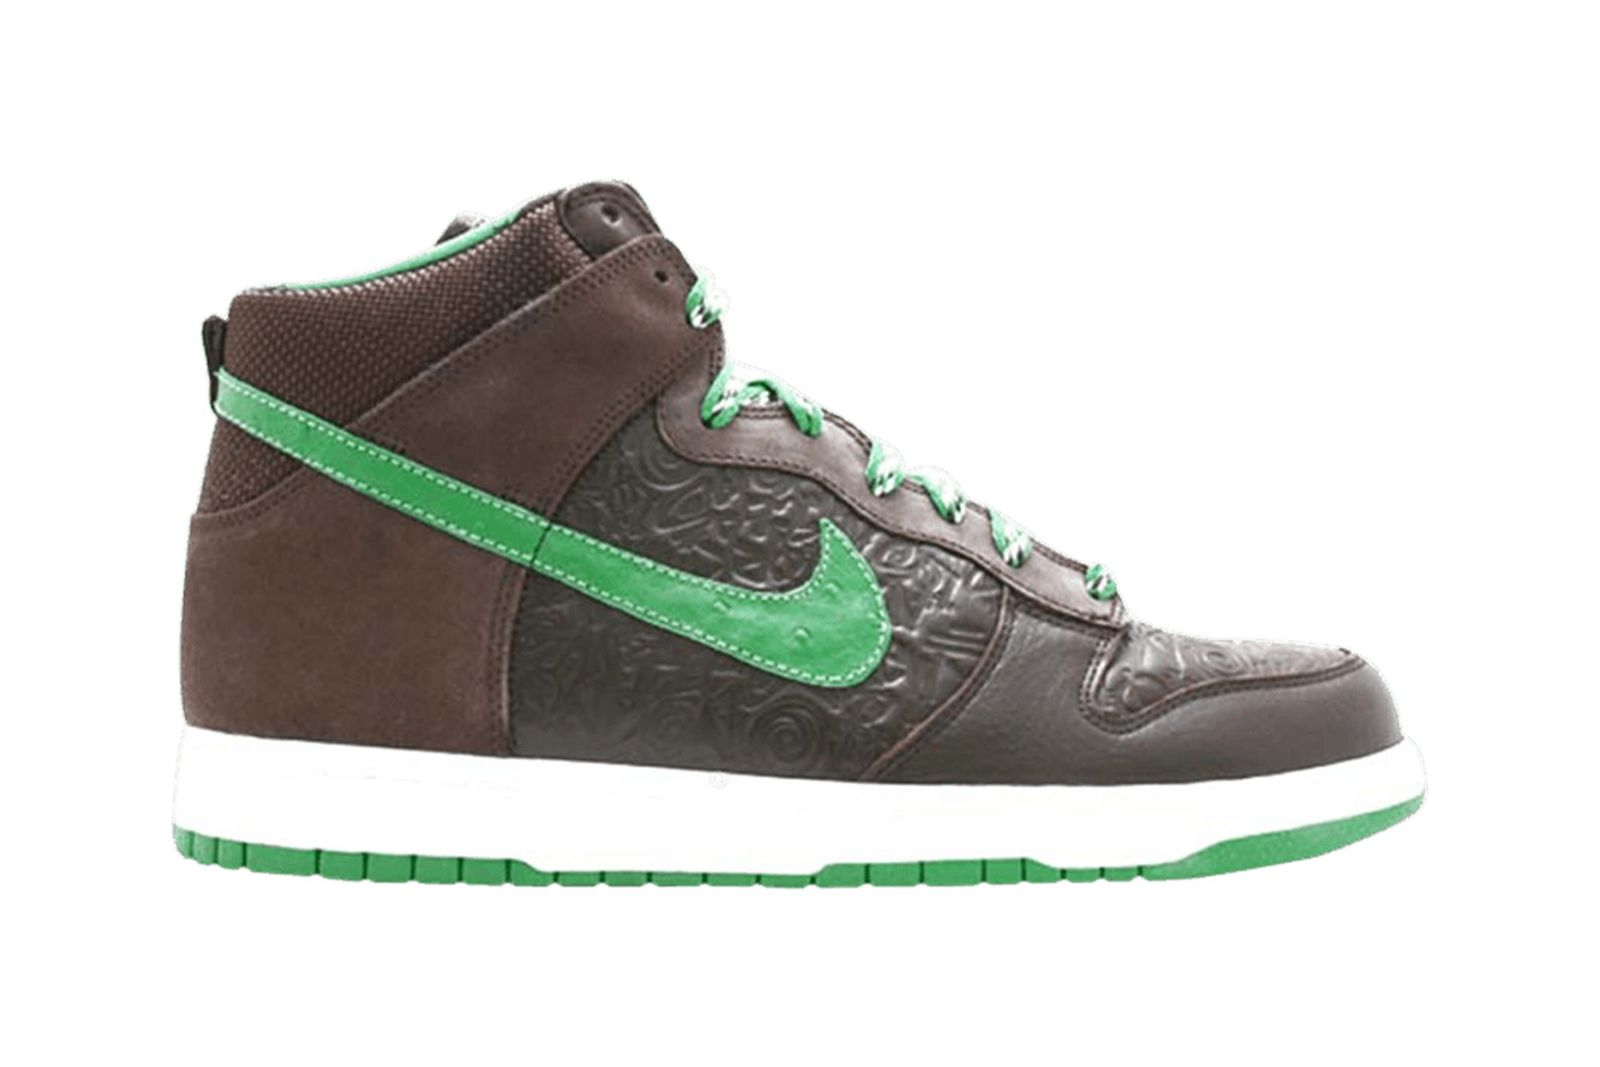 stussy-nike-sneaker-collaboration-roundup-07